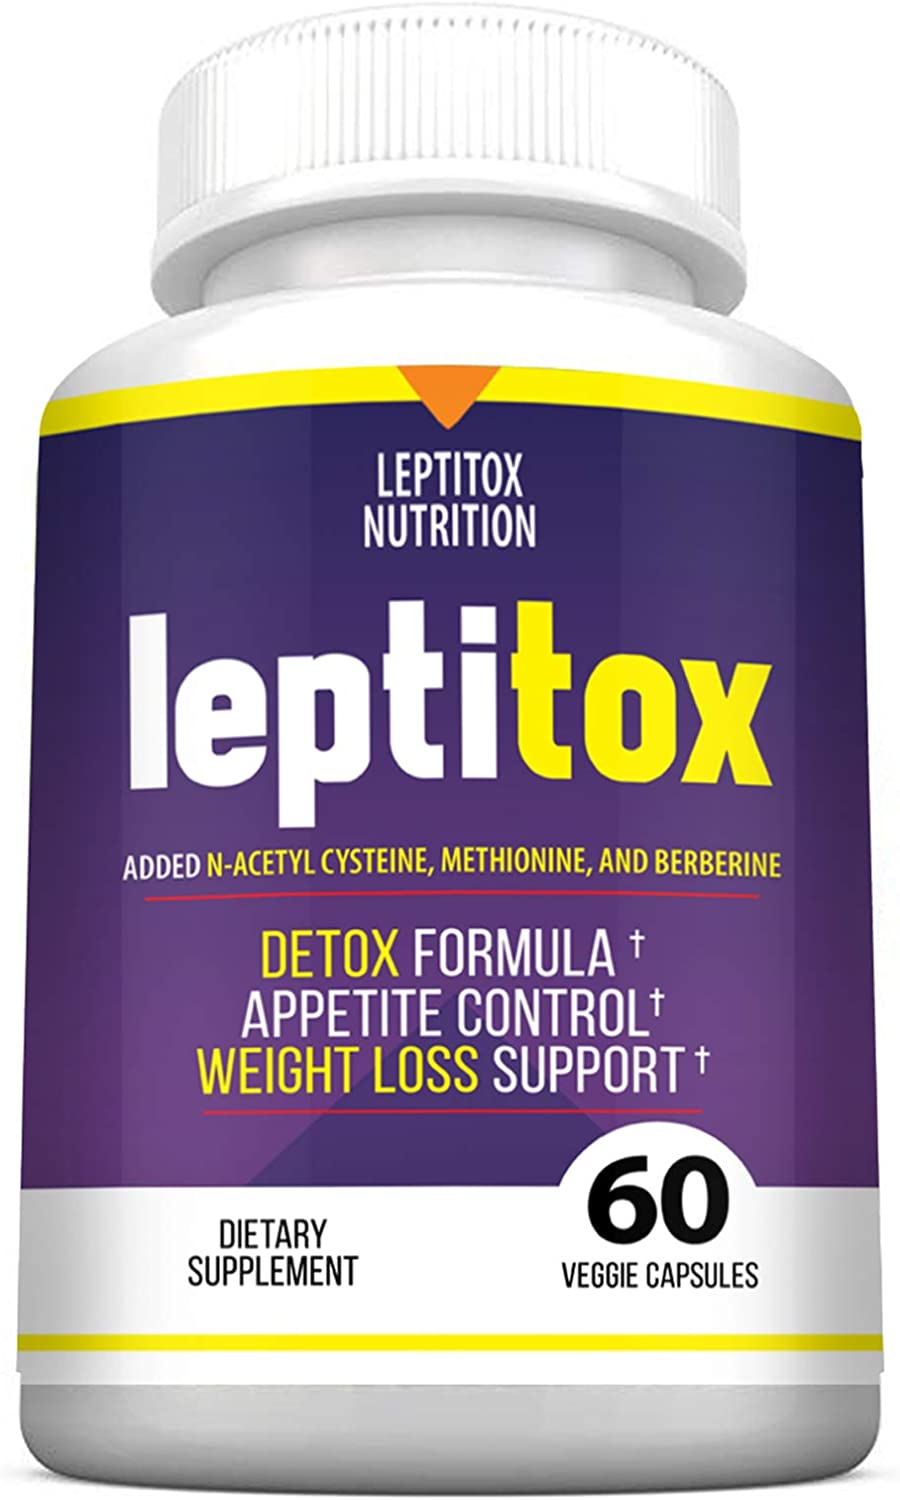 Dimensions Length  Leptitox Weight Loss